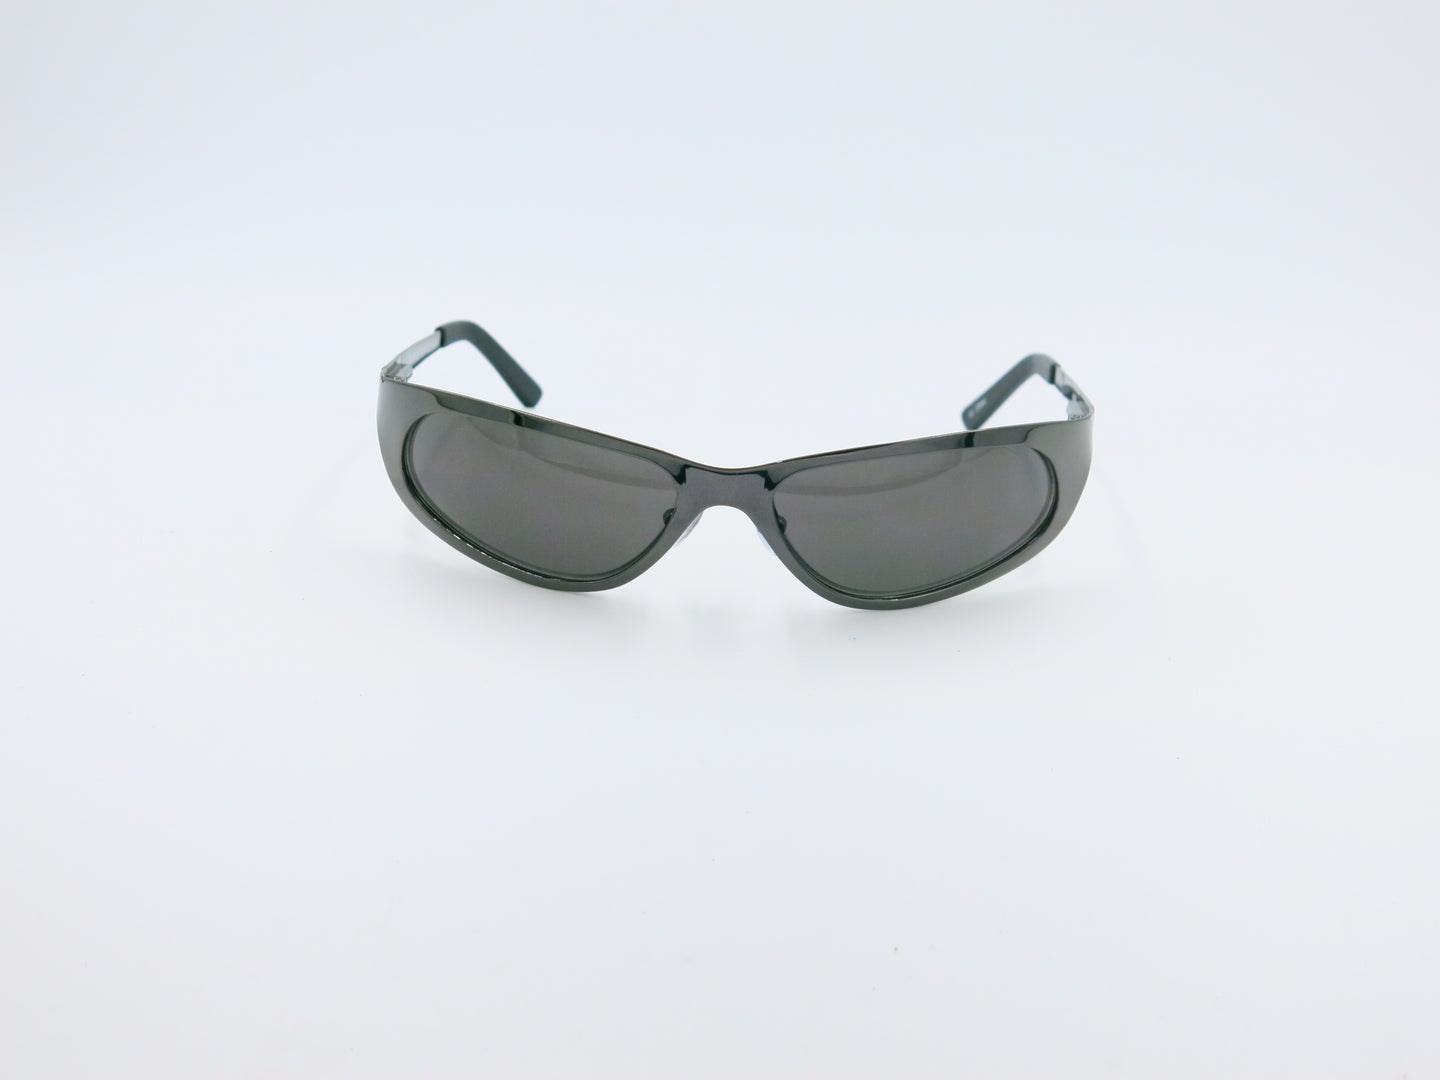 Gargoyles Sunglasses Pitstop | Sunglasses by Gargoyles | Friedman & Sons